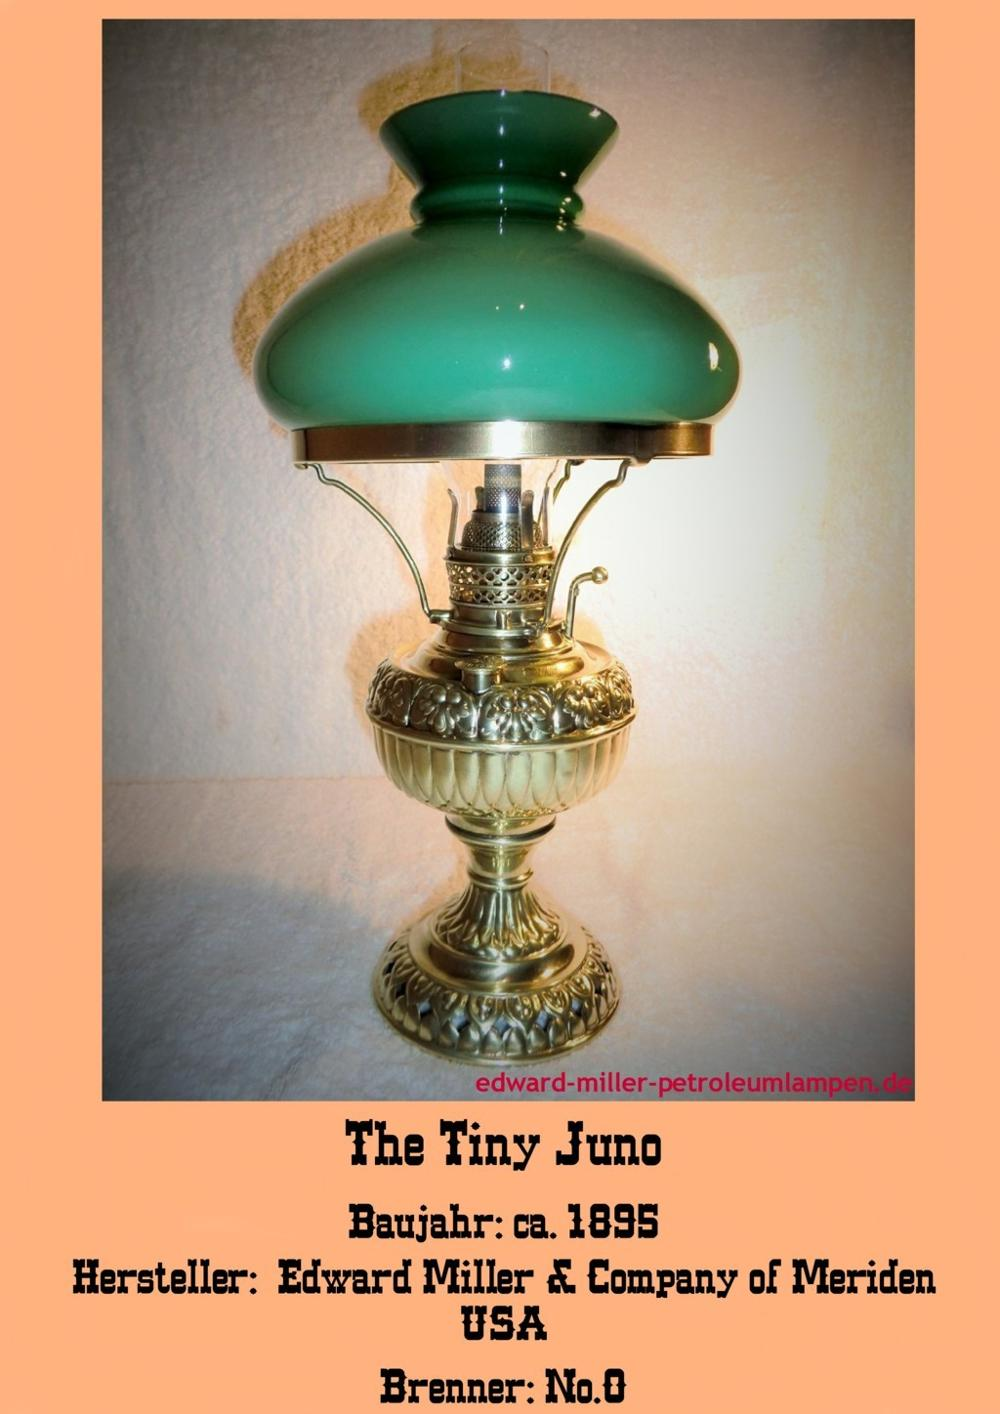 The Tiny Juno Lamp